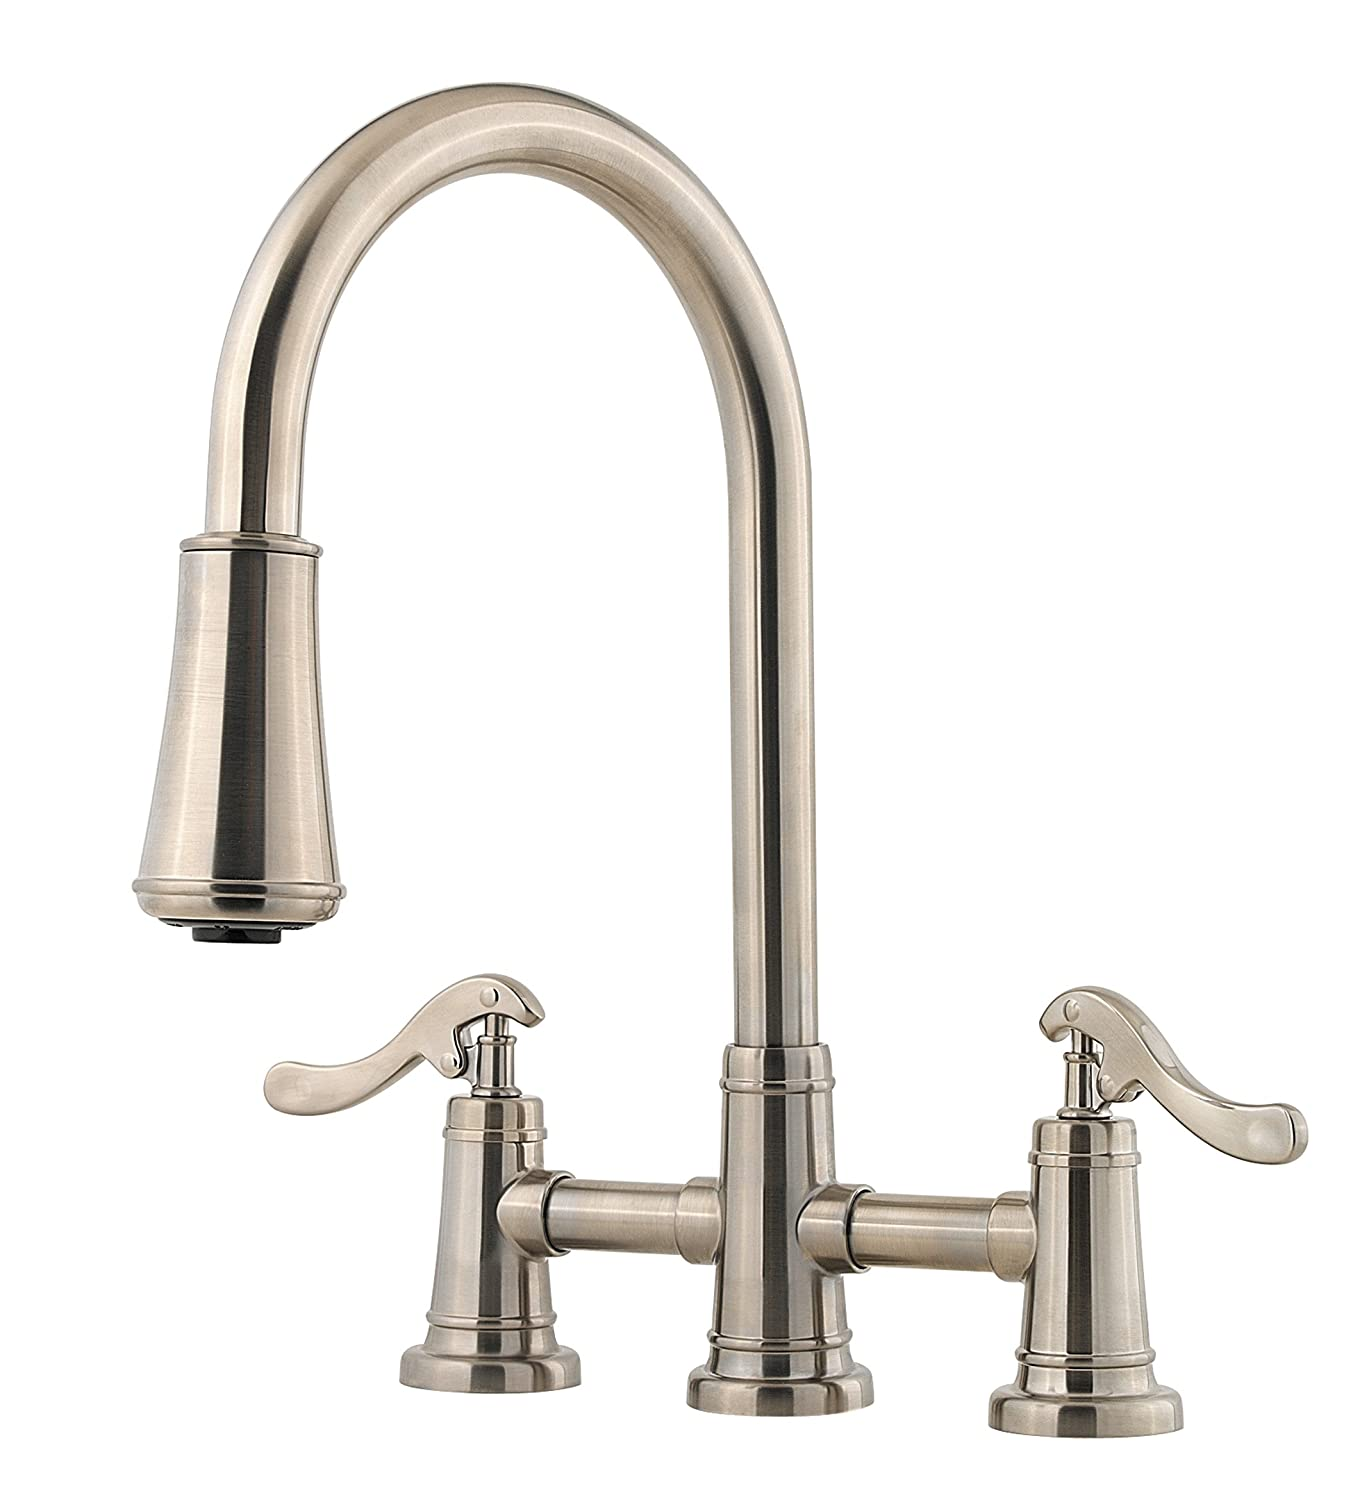 Pfister LG531YPK Ashfield 2-Handle Pull Down Kitchen Faucet in ...